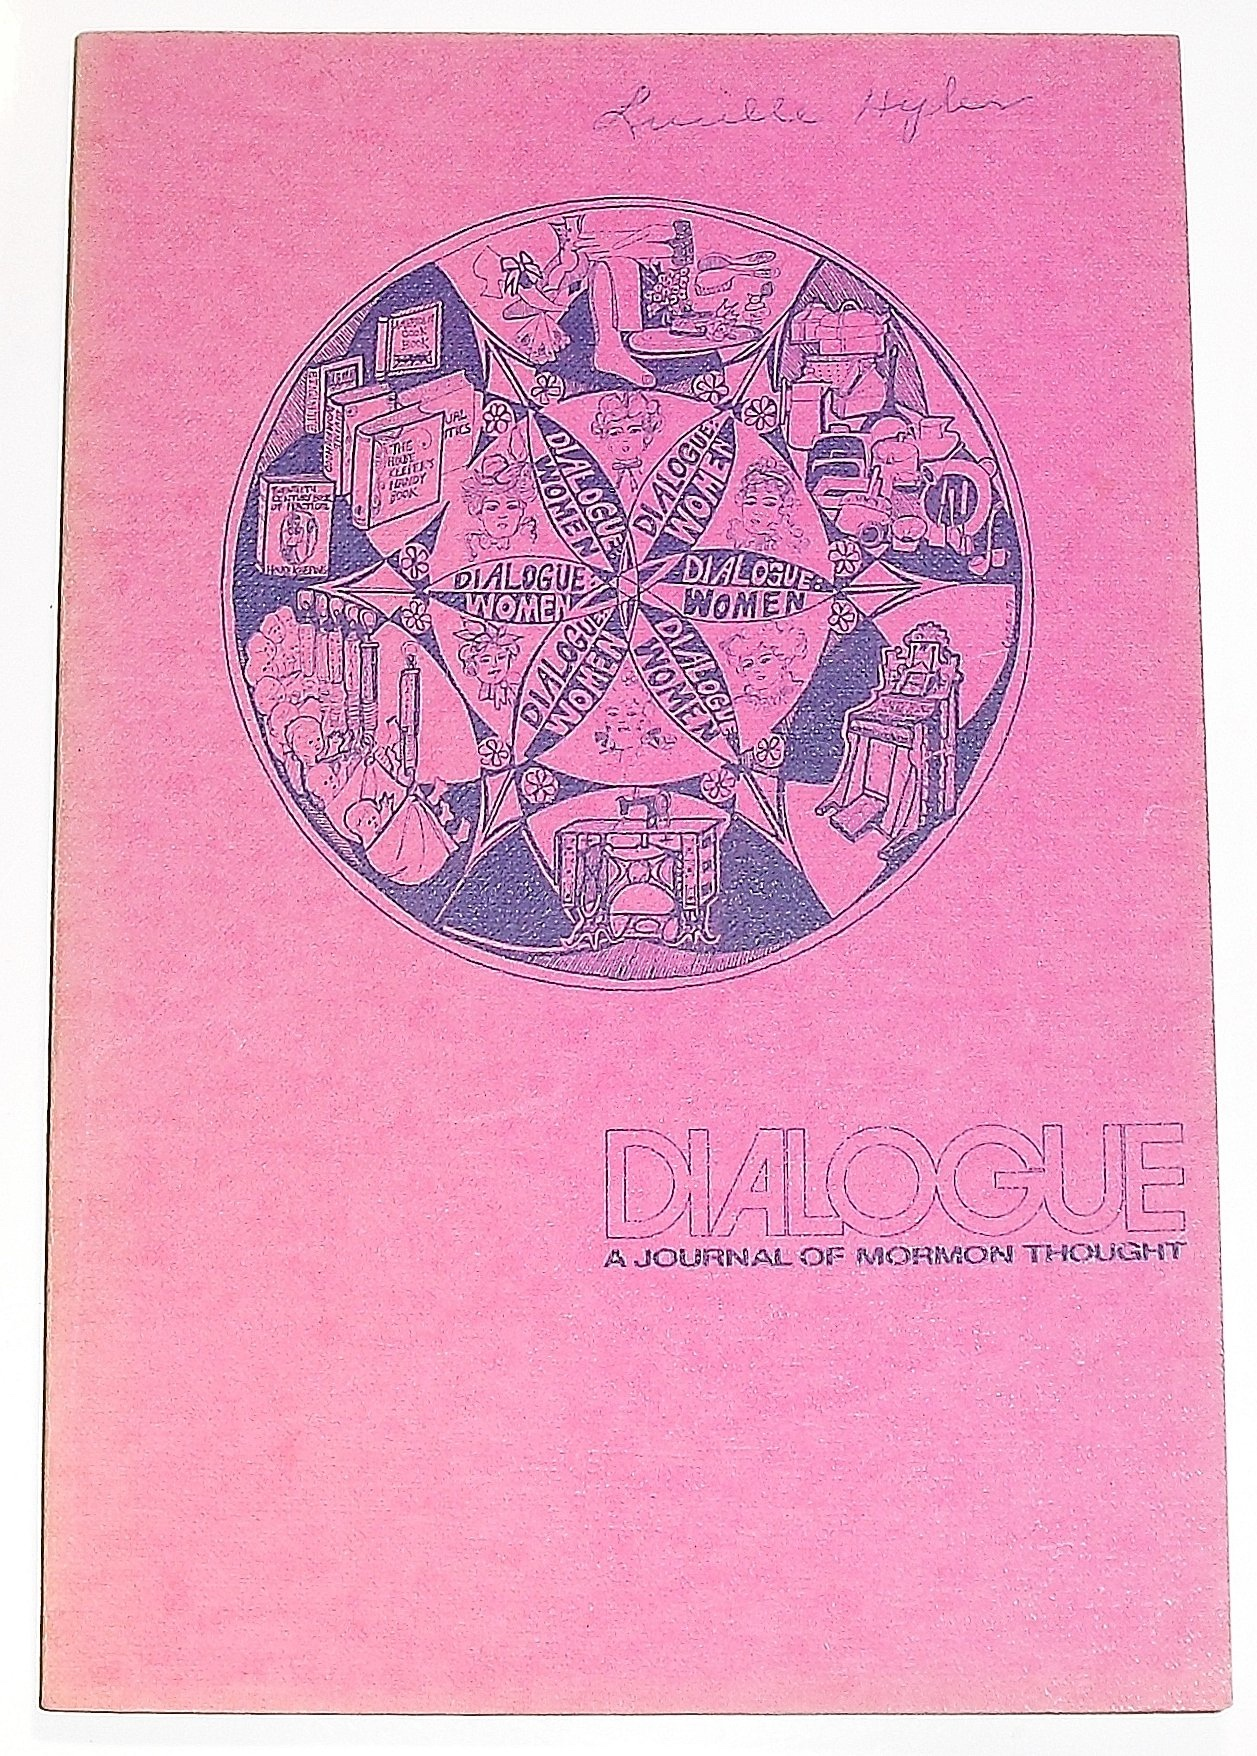 Dialogue - a Journal of Mormon Thought - Vol 6 - No 2 - Summer 1971